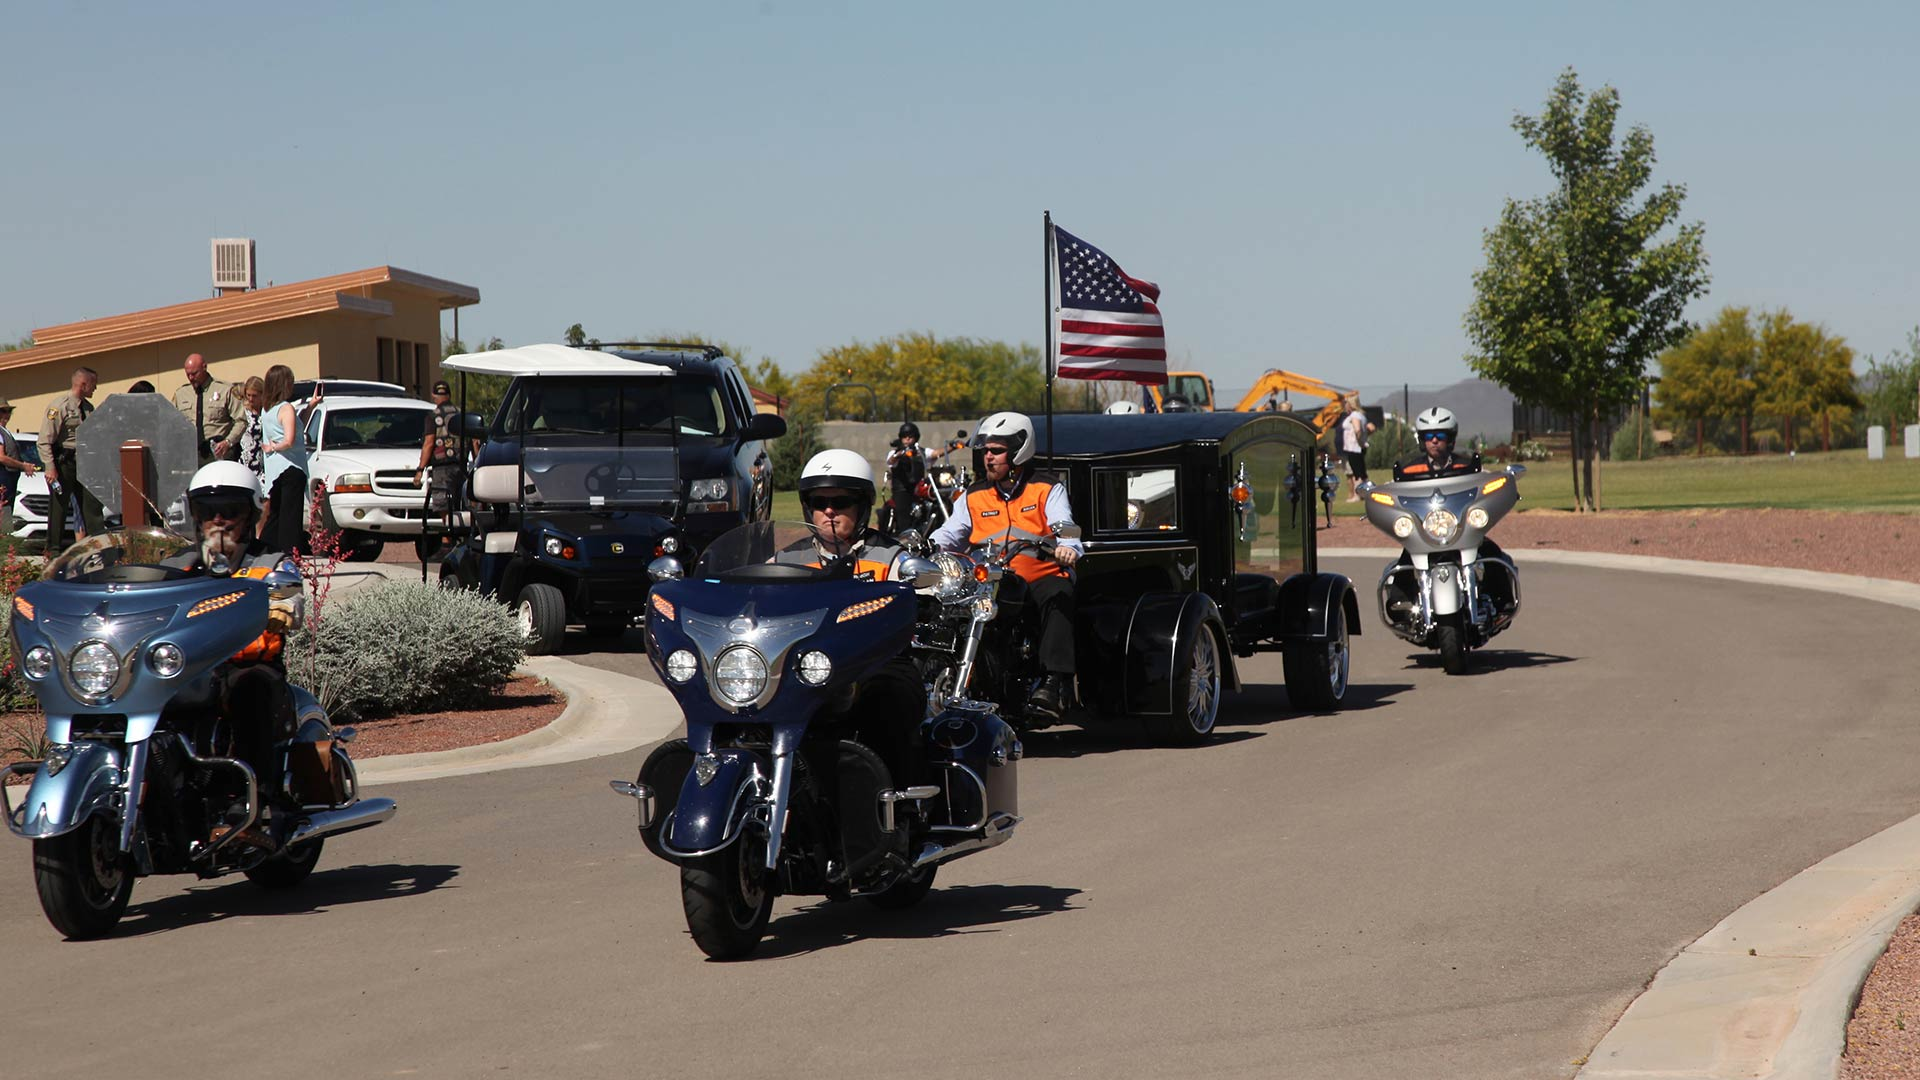 motorcycles lead hearse veteran memorial hero